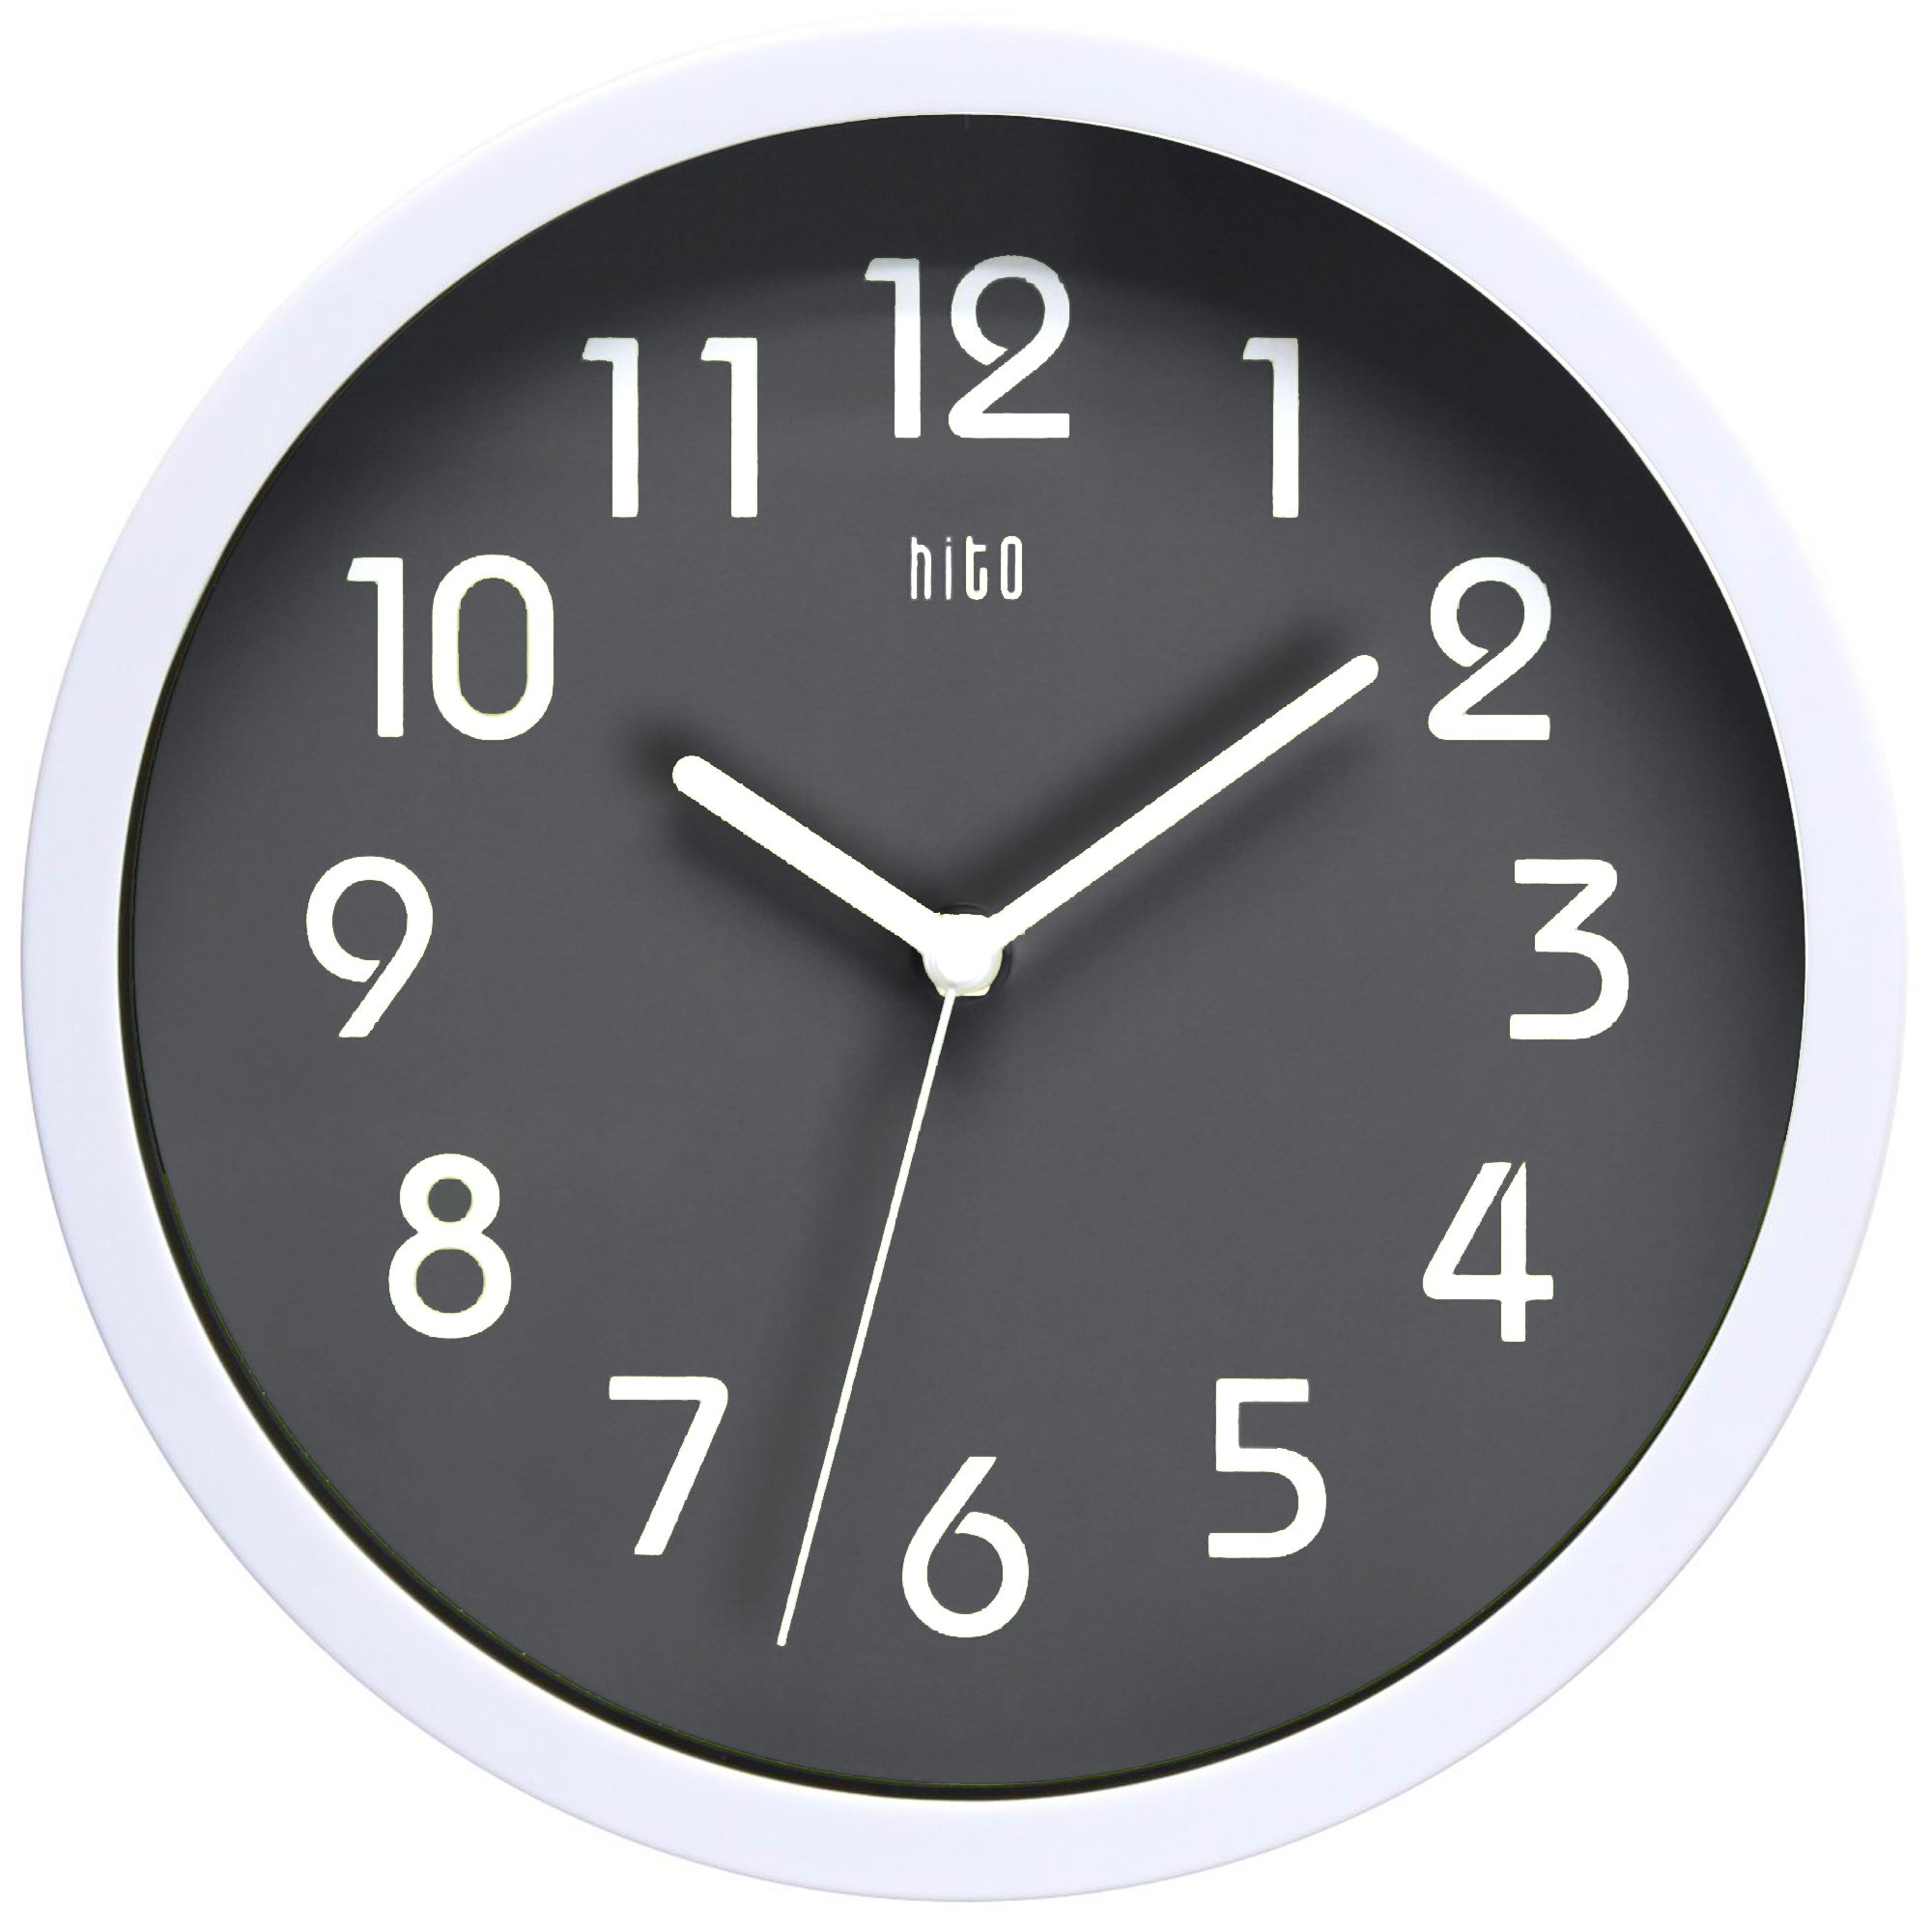 hito Silent Wall Clock Non ticking 10 inch Excellent Accurate Sweep Movement Glass Cover, Modern Decorative for Kitchen, Living Room, Bathroom, Bedroom, Office (Gray) by hito